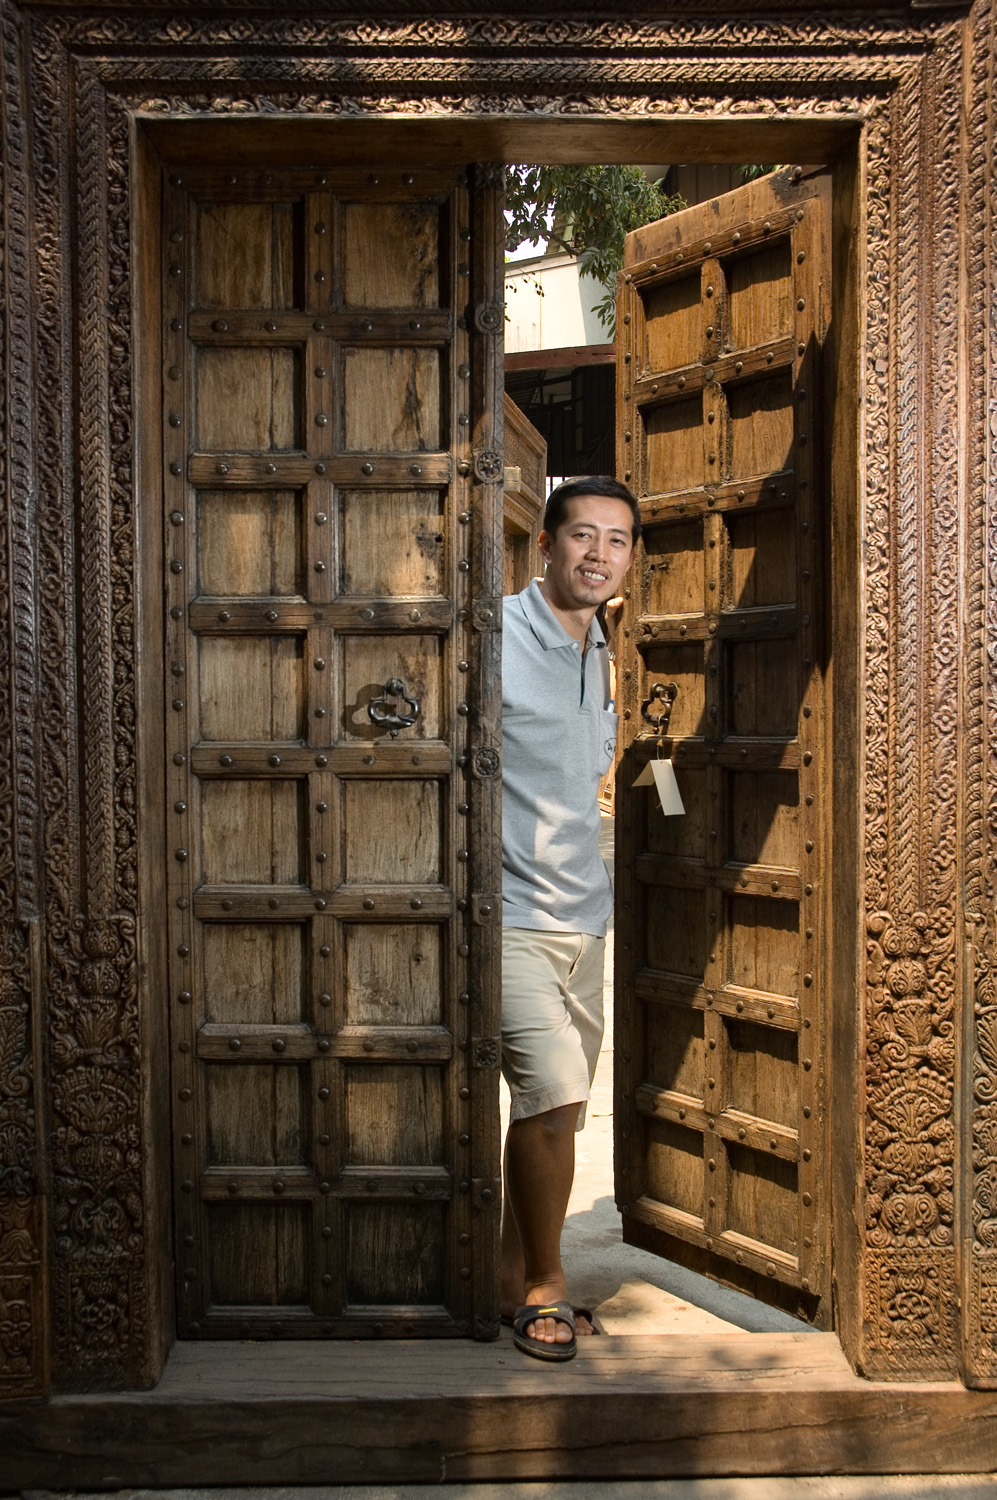 Anusak Parnichyakorn, owner of De Siam colonial and antique furniture store poses in one of the several antique Indian doorways he has on offer.